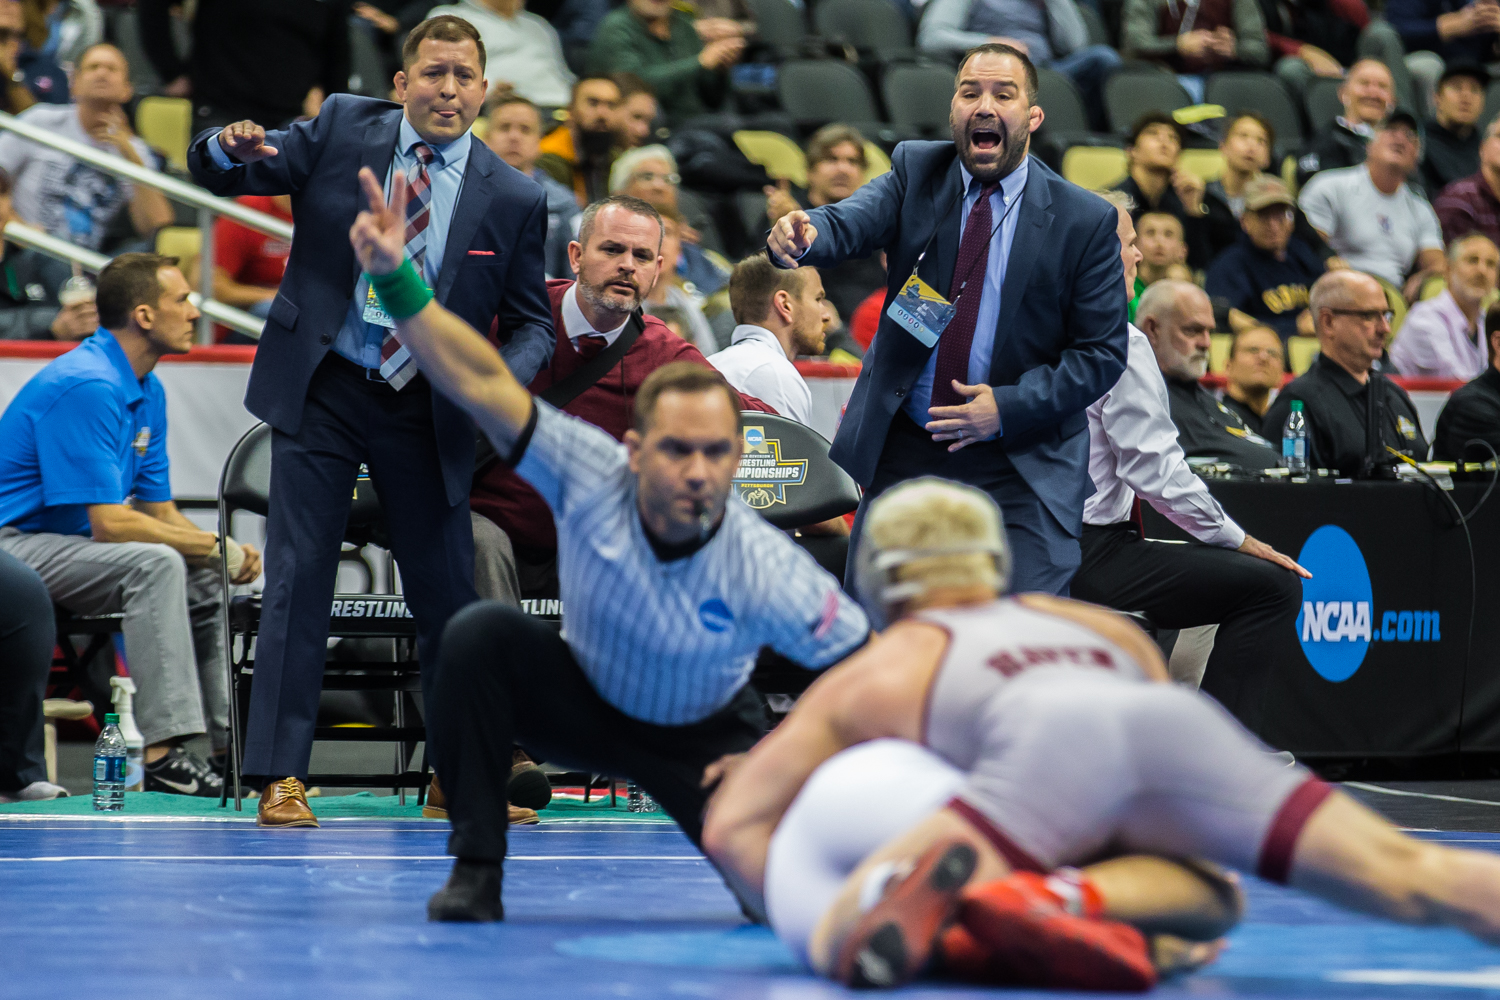 Lock+Haven+coaches+yell+on+the+mat+while+165-pound+Chance+Marsteller+scores+a+takedown+on+Wisconsin%27s+Evan+Wick+during+the+fifth+session+of+the+2019+NCAA+D1+Wrestling+Championships+at+the+PPG+Paints+Arena+in+Pittsburgh%2C+PA+on+Saturday%2C+March+23%2C+2019.+Marsteller+won+by+decision%2C+6-5%2C+and+clinched+third+in+the+weight+class.